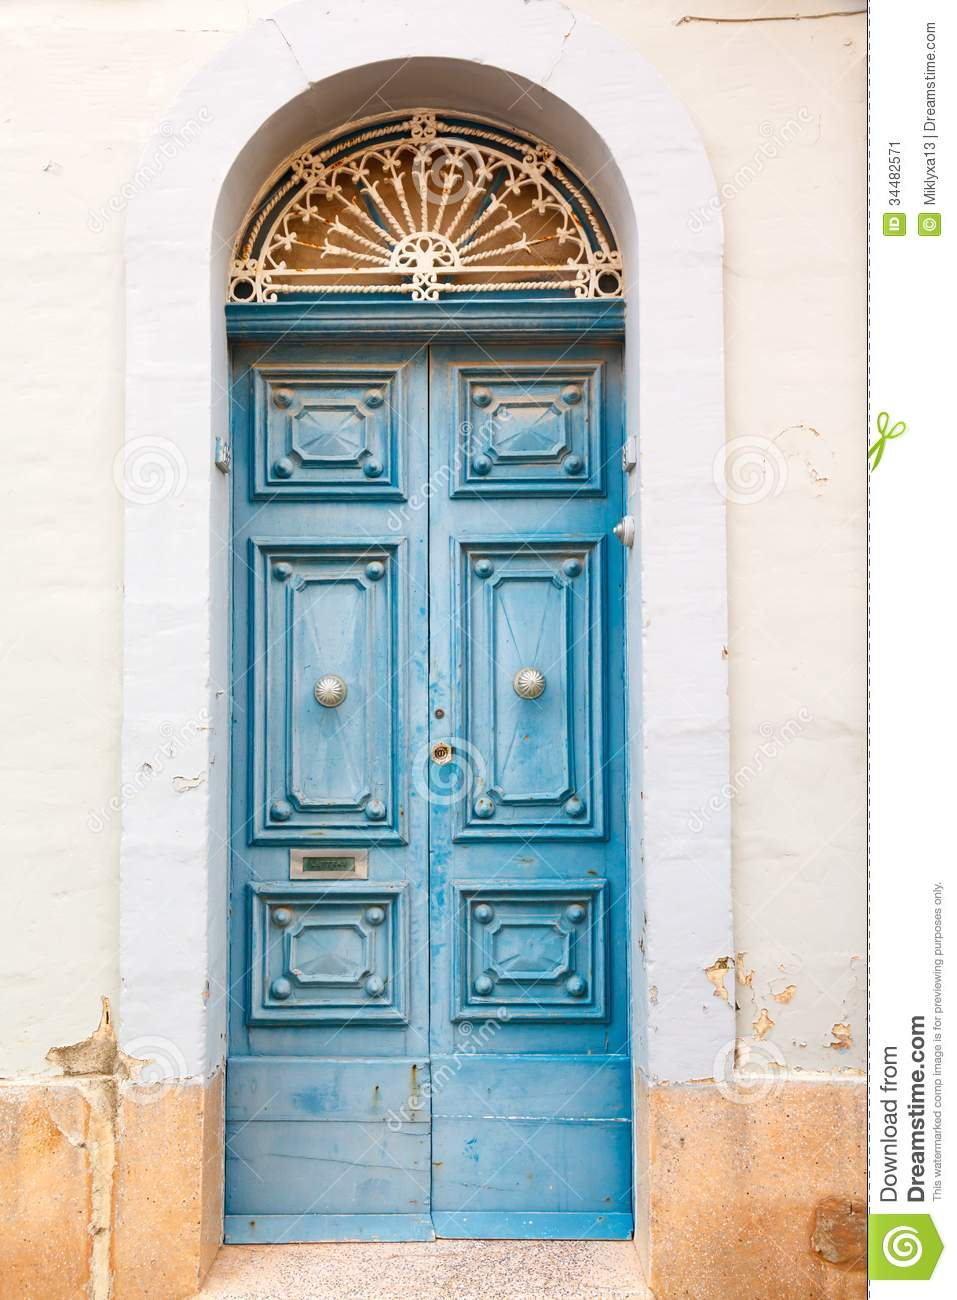 Wooden Front Door To The House Stock Image - Image: 34482571